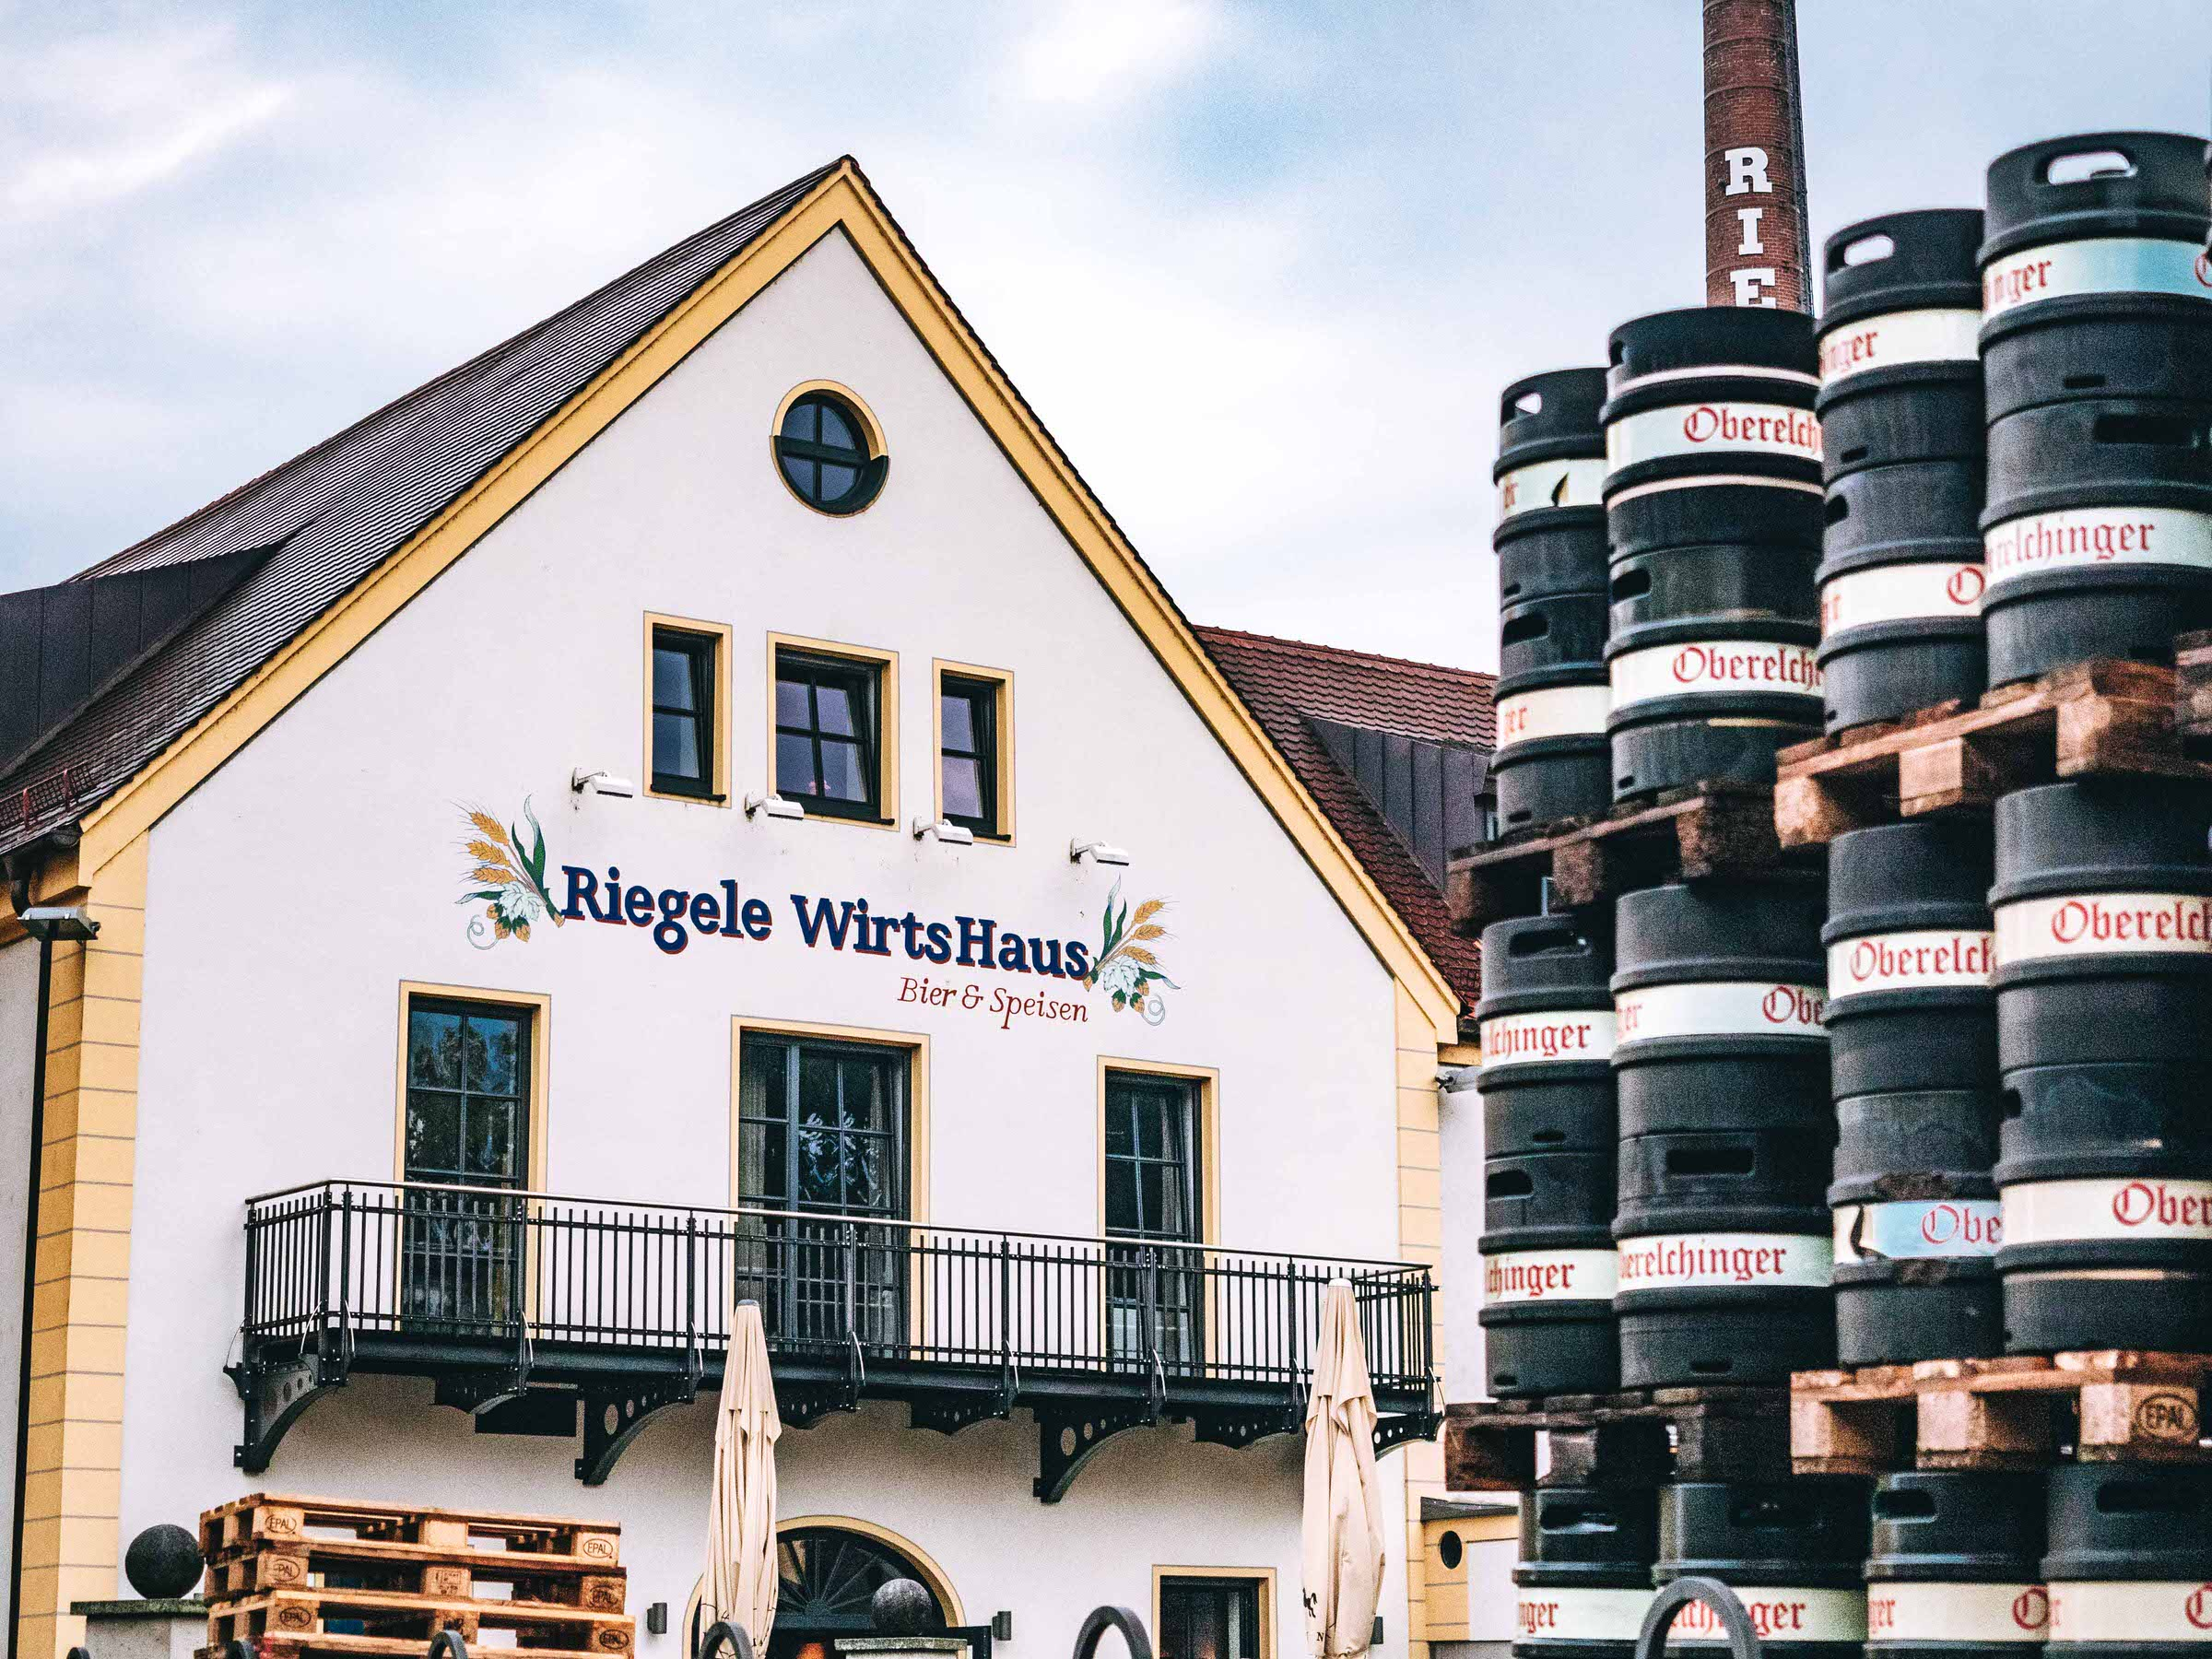 Whether you're planning a trip to Bavaria or just need a fun day trip from Munich, make sure you add Augsburg, Germany to your list! With stunning architecture and history heavily dating back to the 1500s, there is so much to explore and so many things to do. So grab a beer and head to Augsburg! #augsburggermany #augsburgphotography #traveldestinations #germanytravel